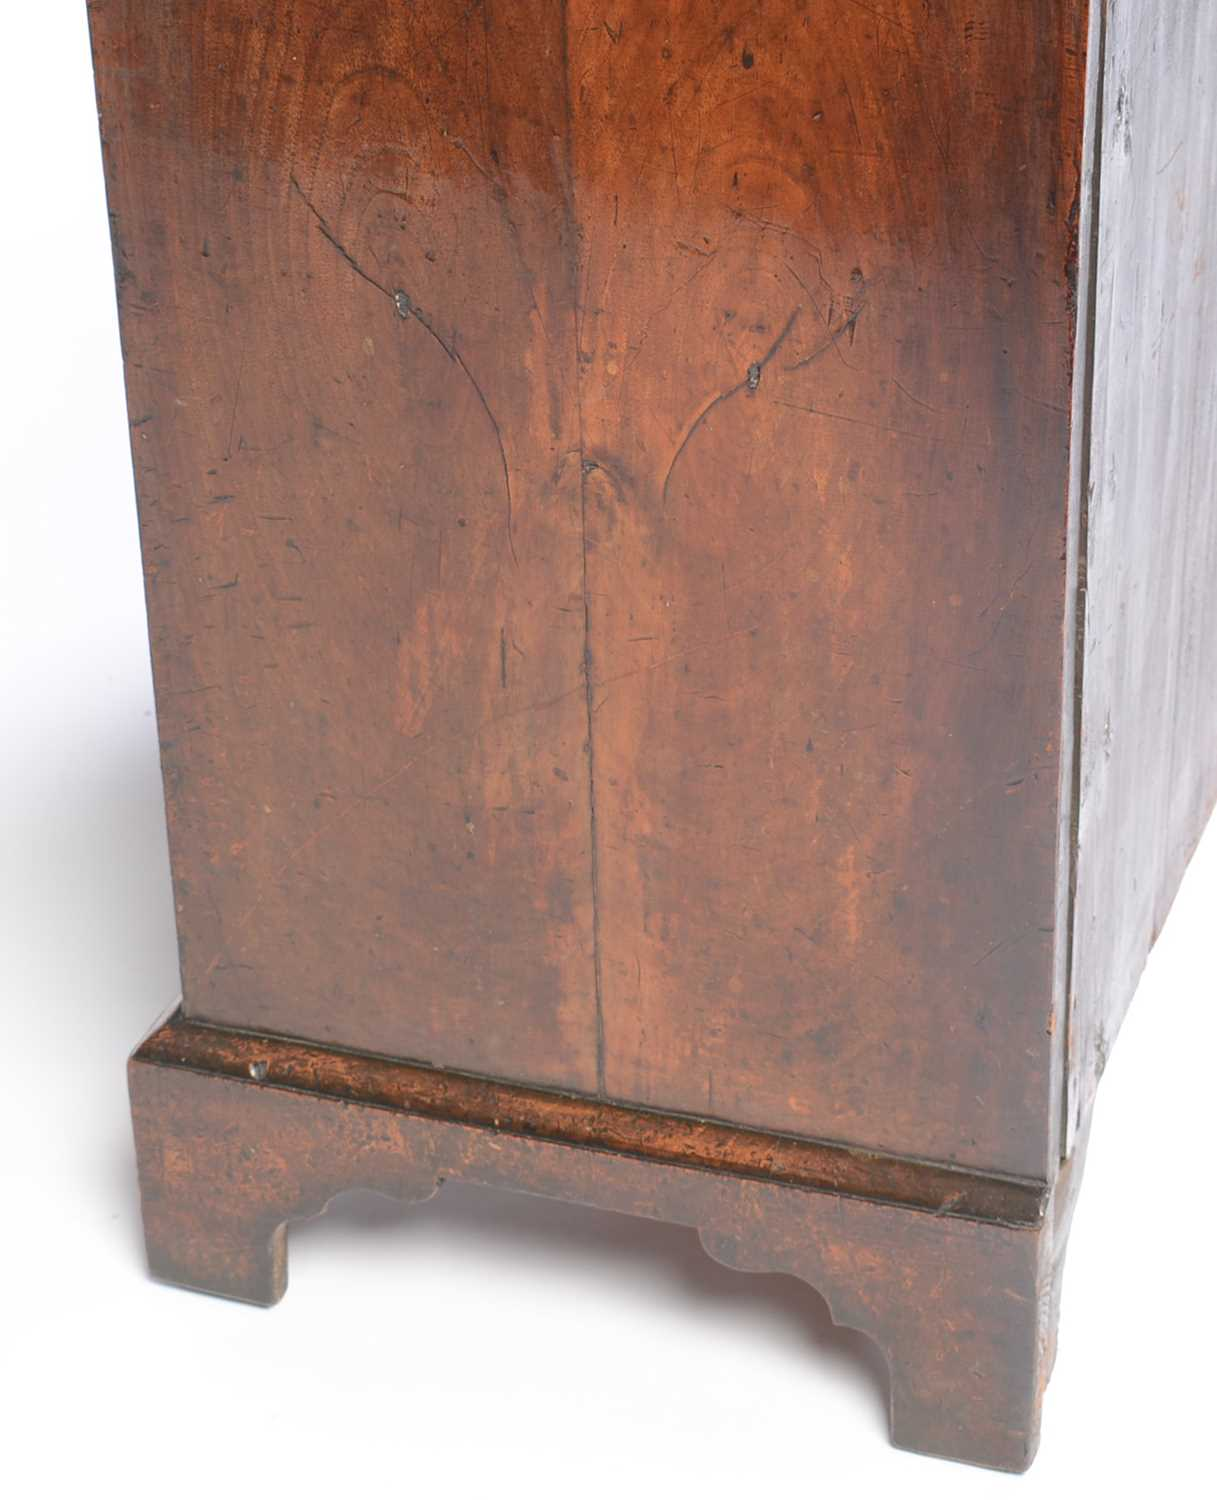 Early 18th Century walnut bachelors chest - Image 7 of 39